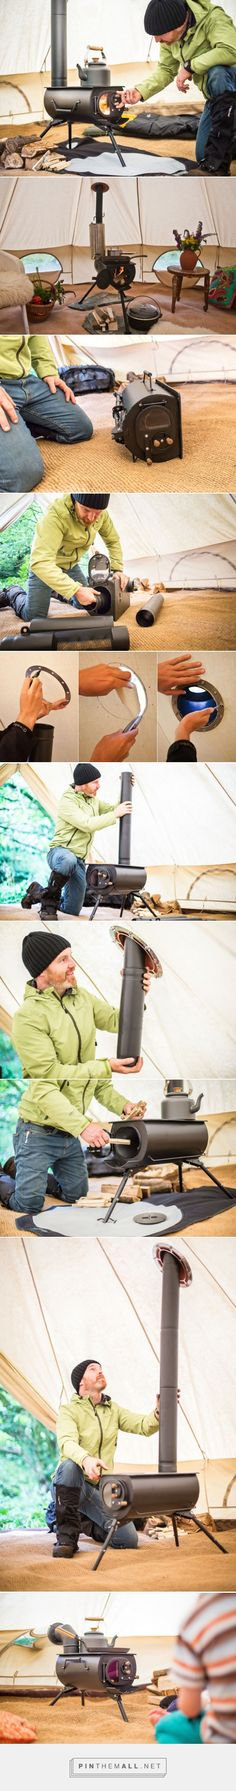 Frontier Plus – Portable Woodburning Stove Can Be Installed in Tents, Teepees, or Small Cabins | Tuvie... - a grouped images picture